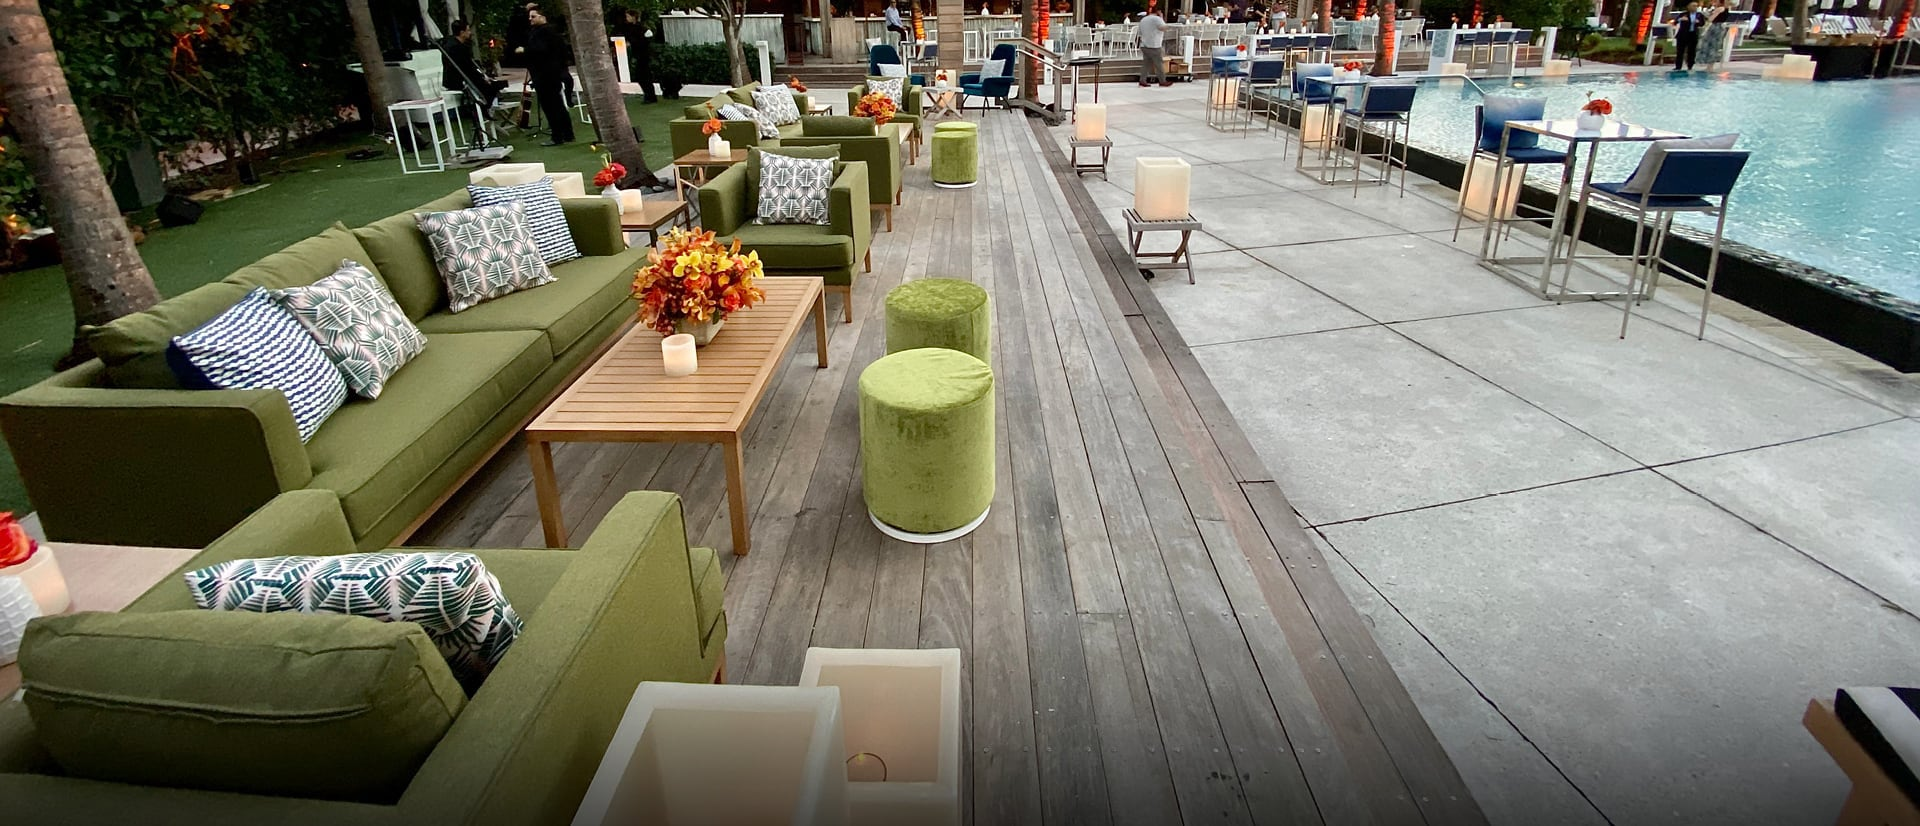 outdoor rentals at poolside event